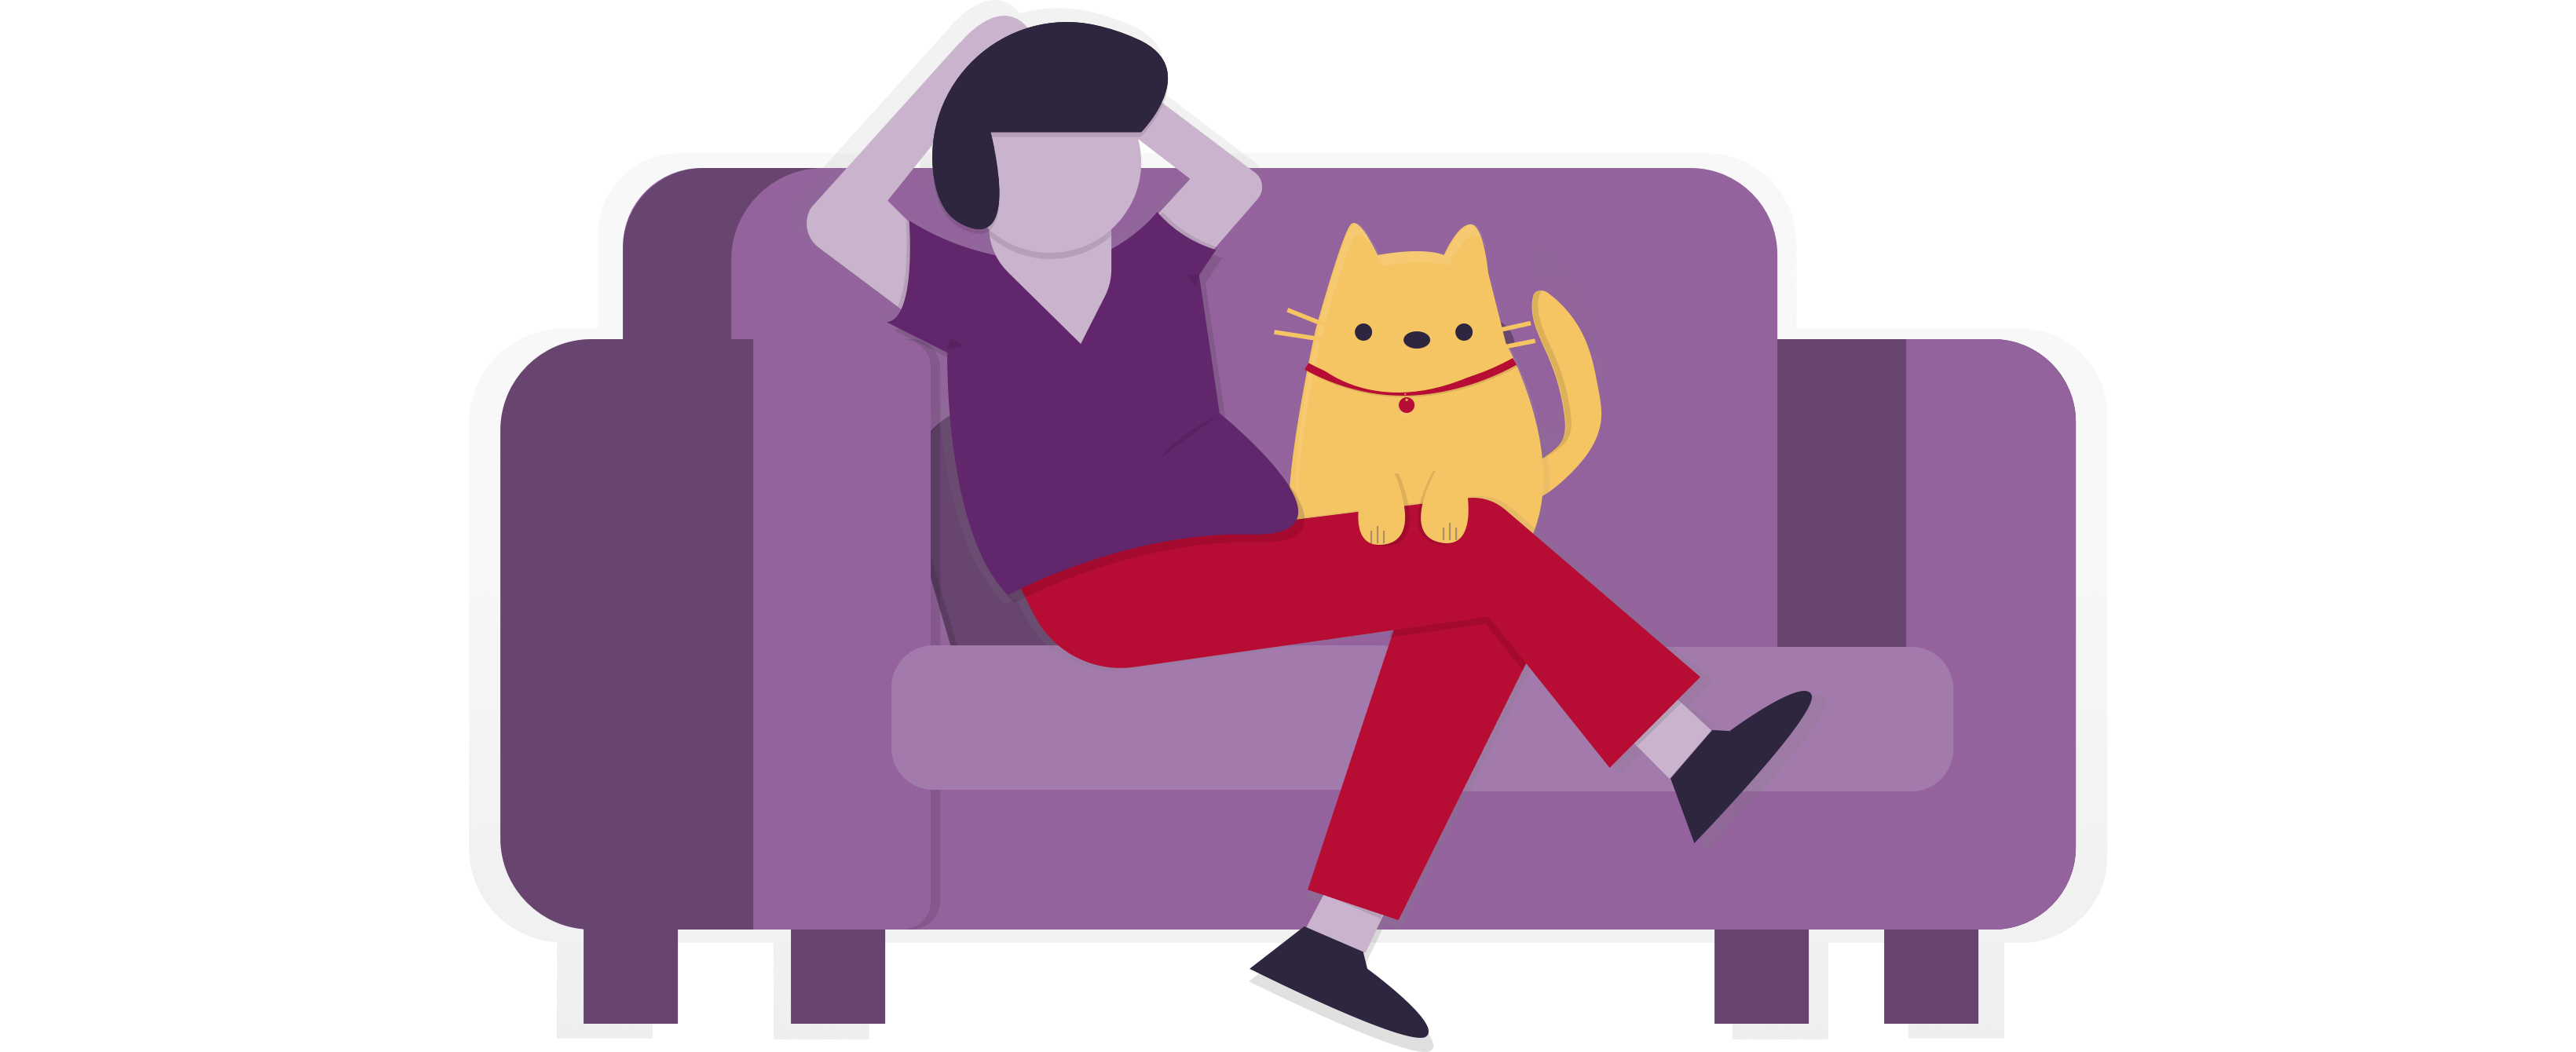 Person on sofa with cat